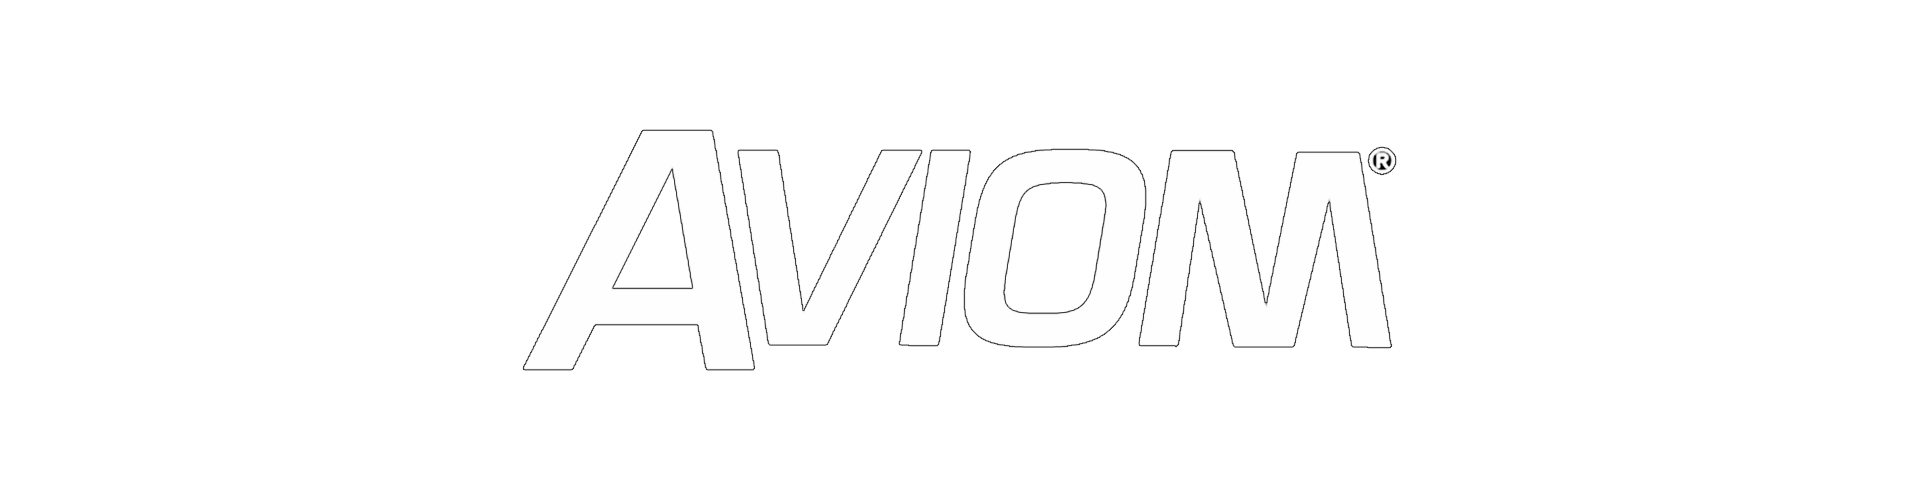 Aviom-logo_white